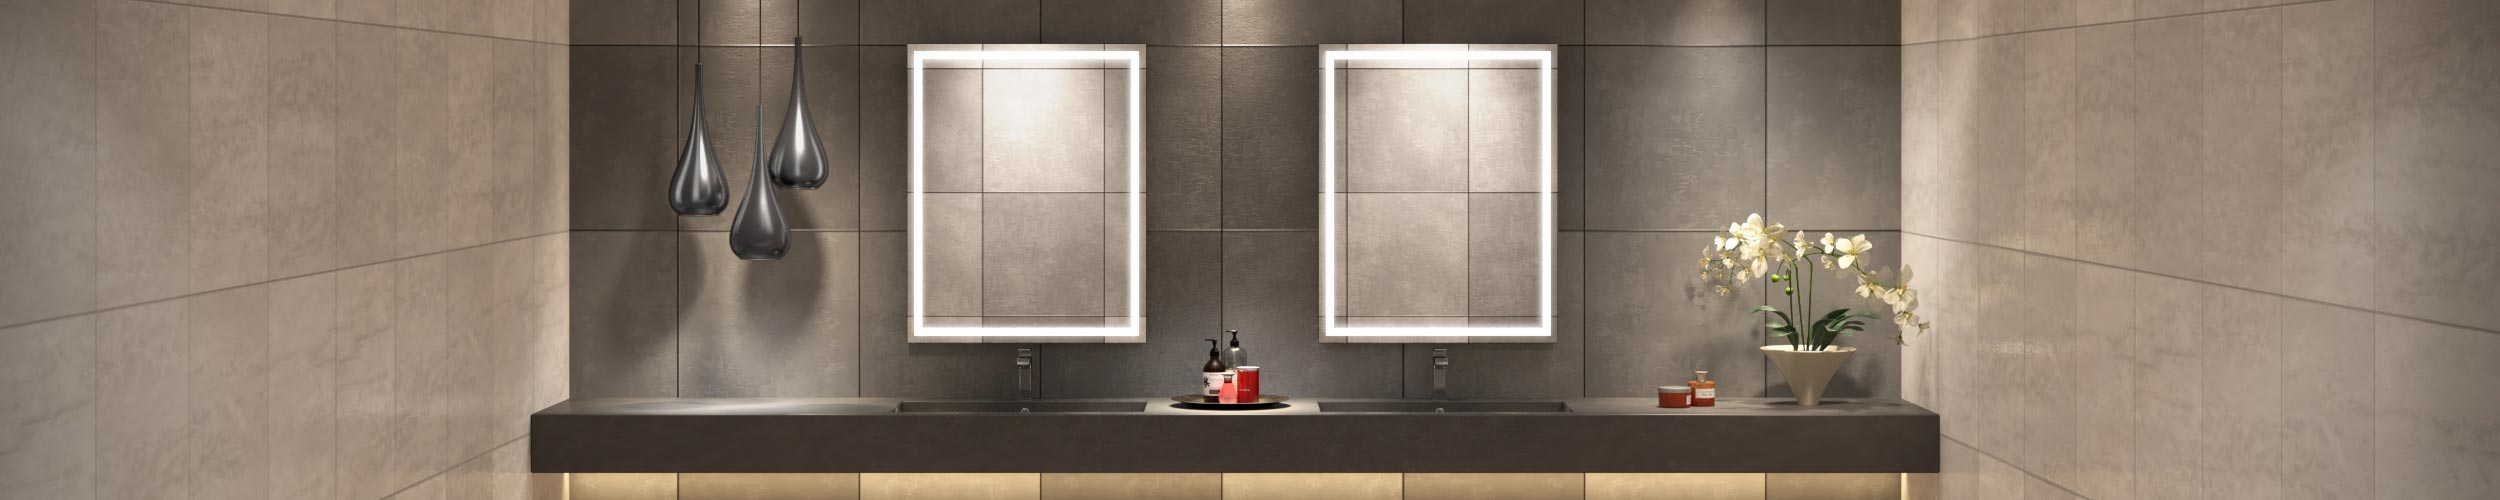 Integrated Light Mirror of Grand Mirrors in Double Sink